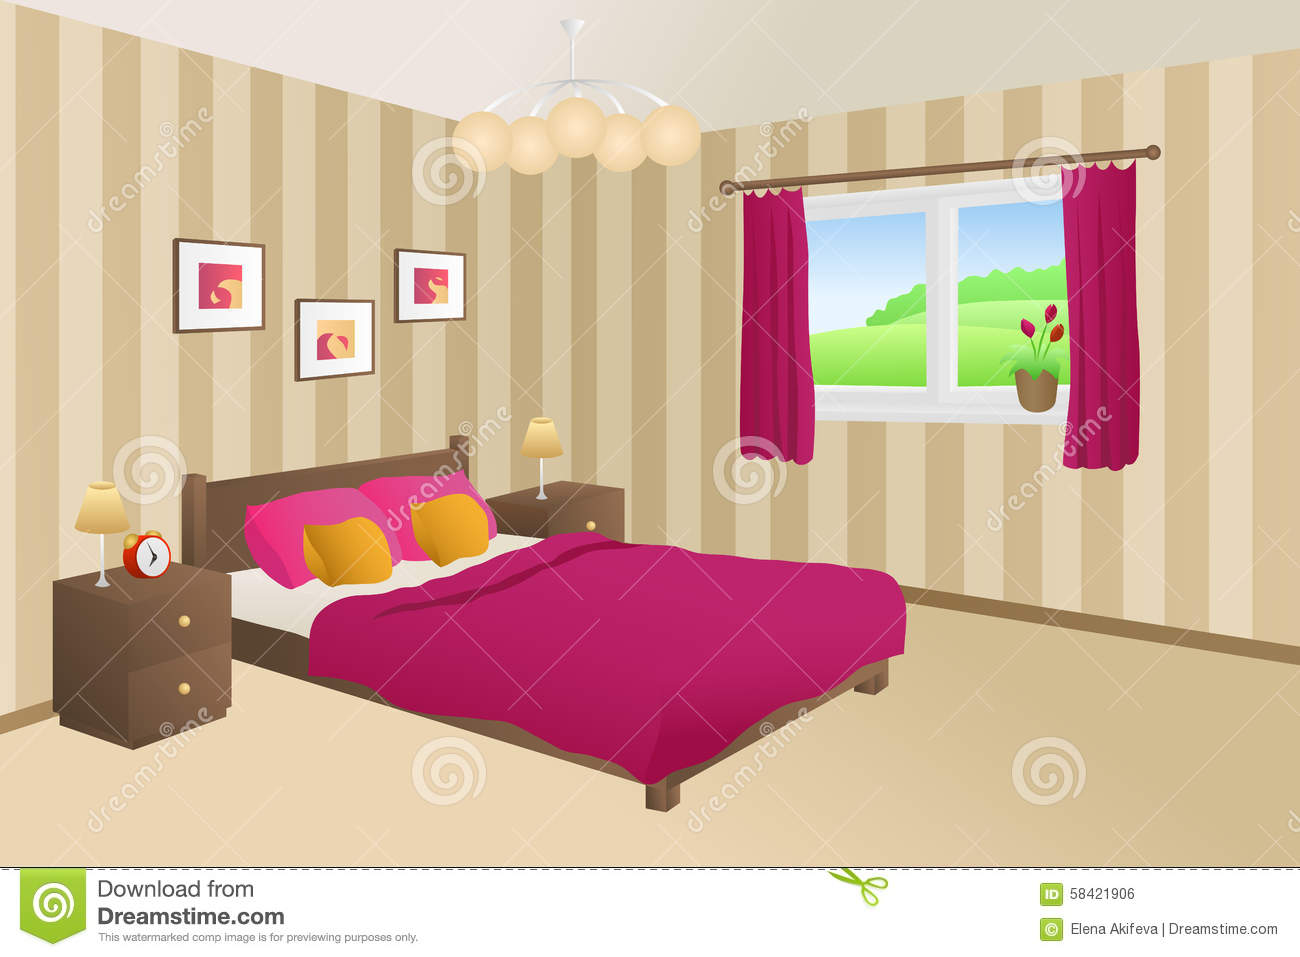 . Modern Bedroom Beige Pink Bed Yellow Pillows Lamps Window